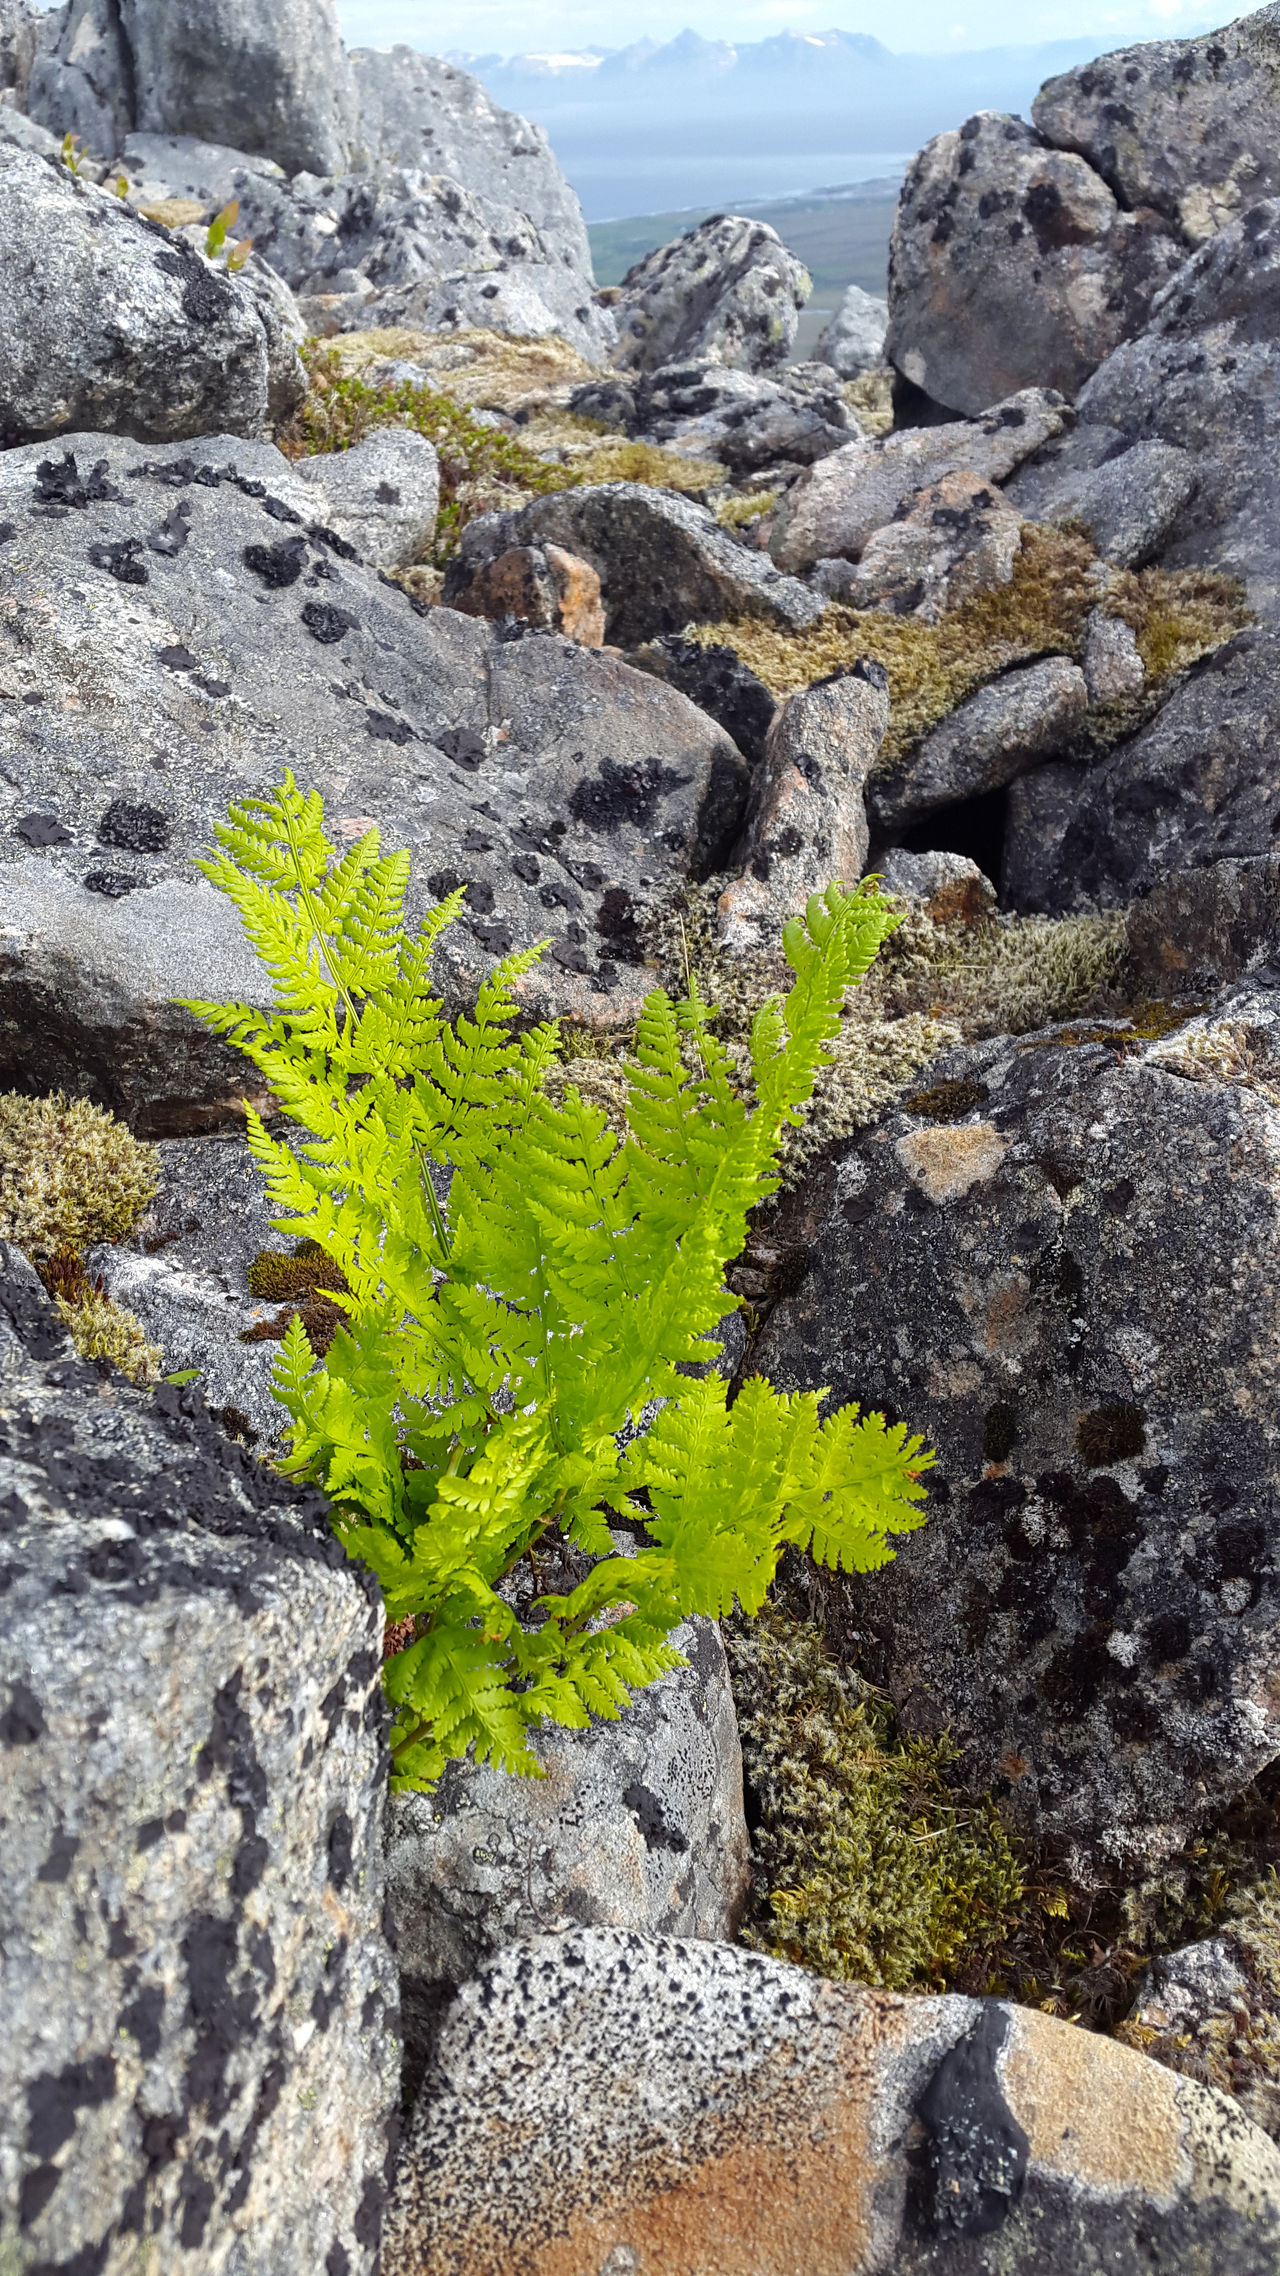 Beauty In Nature Close-up Day Green Color Growth Mountain Nature No People Non-urban Scene Outdoors Rocks Scenics Sea